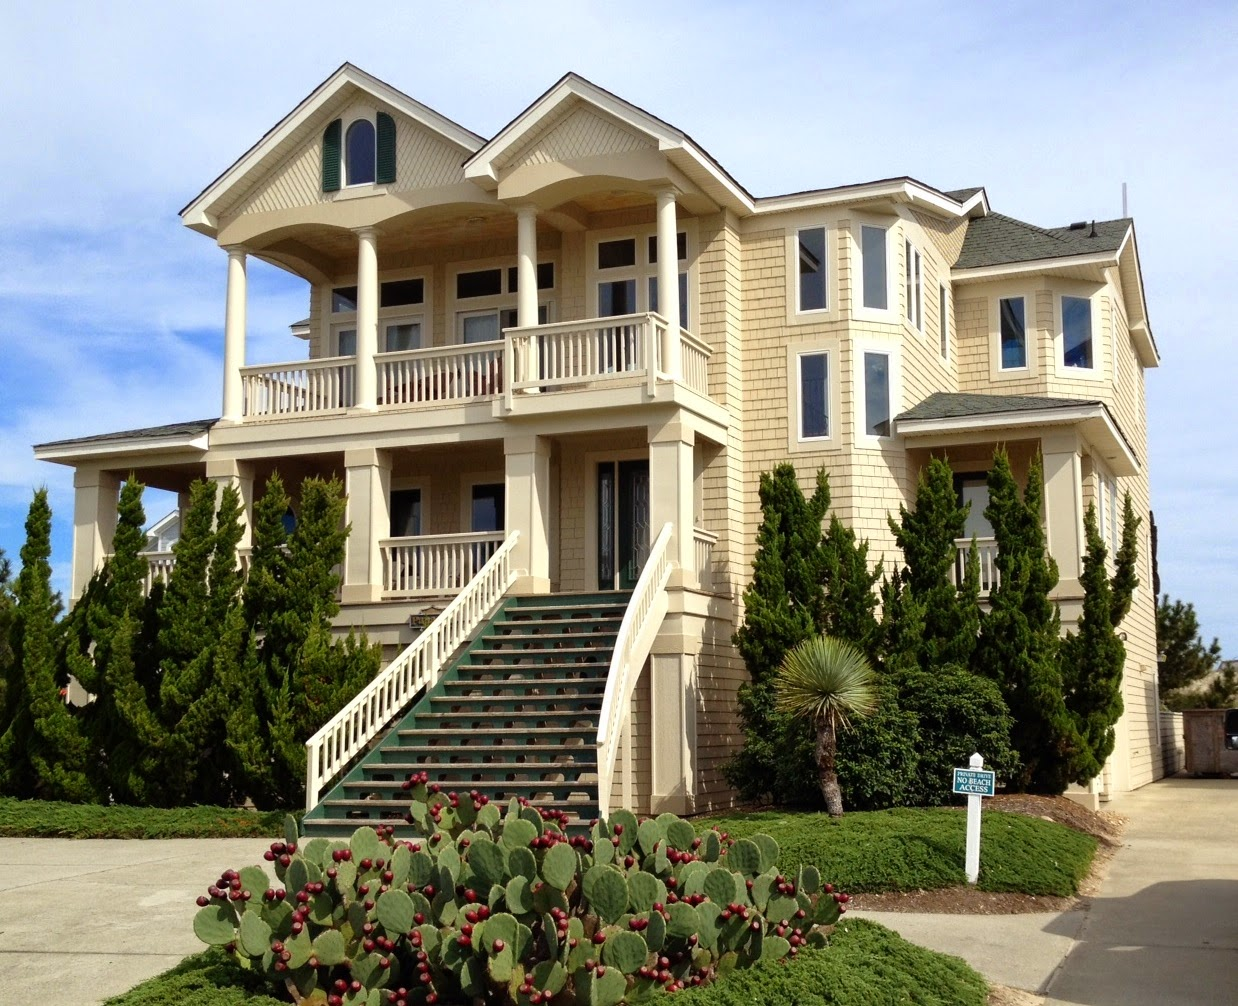 Curb Appeal (and selecting the right painter)